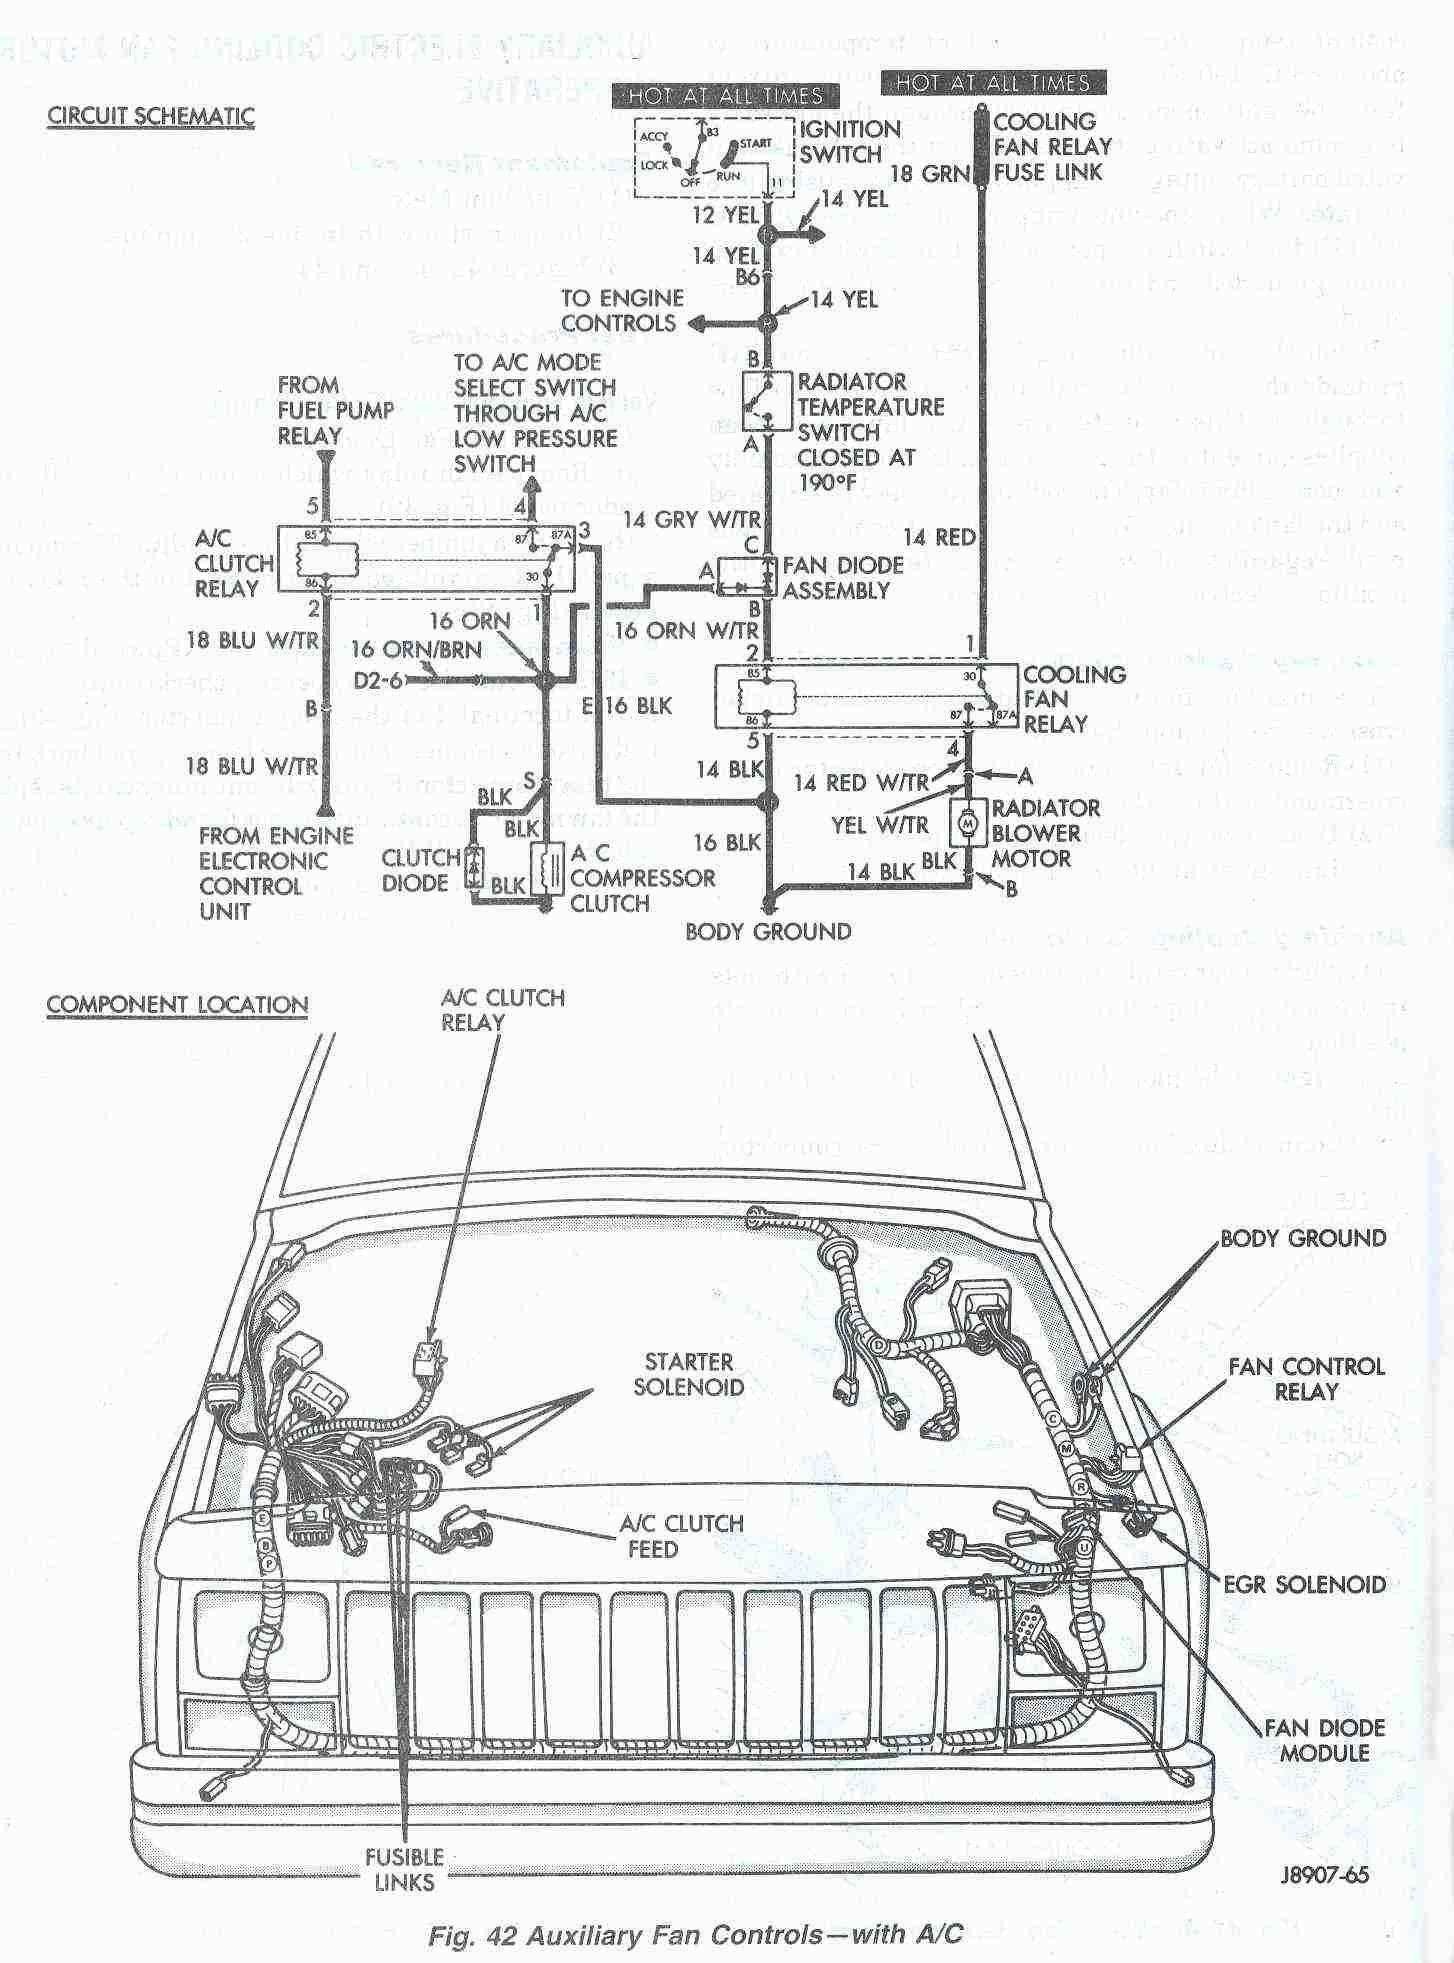 2002 Grand Cherokee Fan Schematic Jeep Cherokee Cooling System Electric Cooling Fan Of 2002 Grand Cherokee Fan Schematic